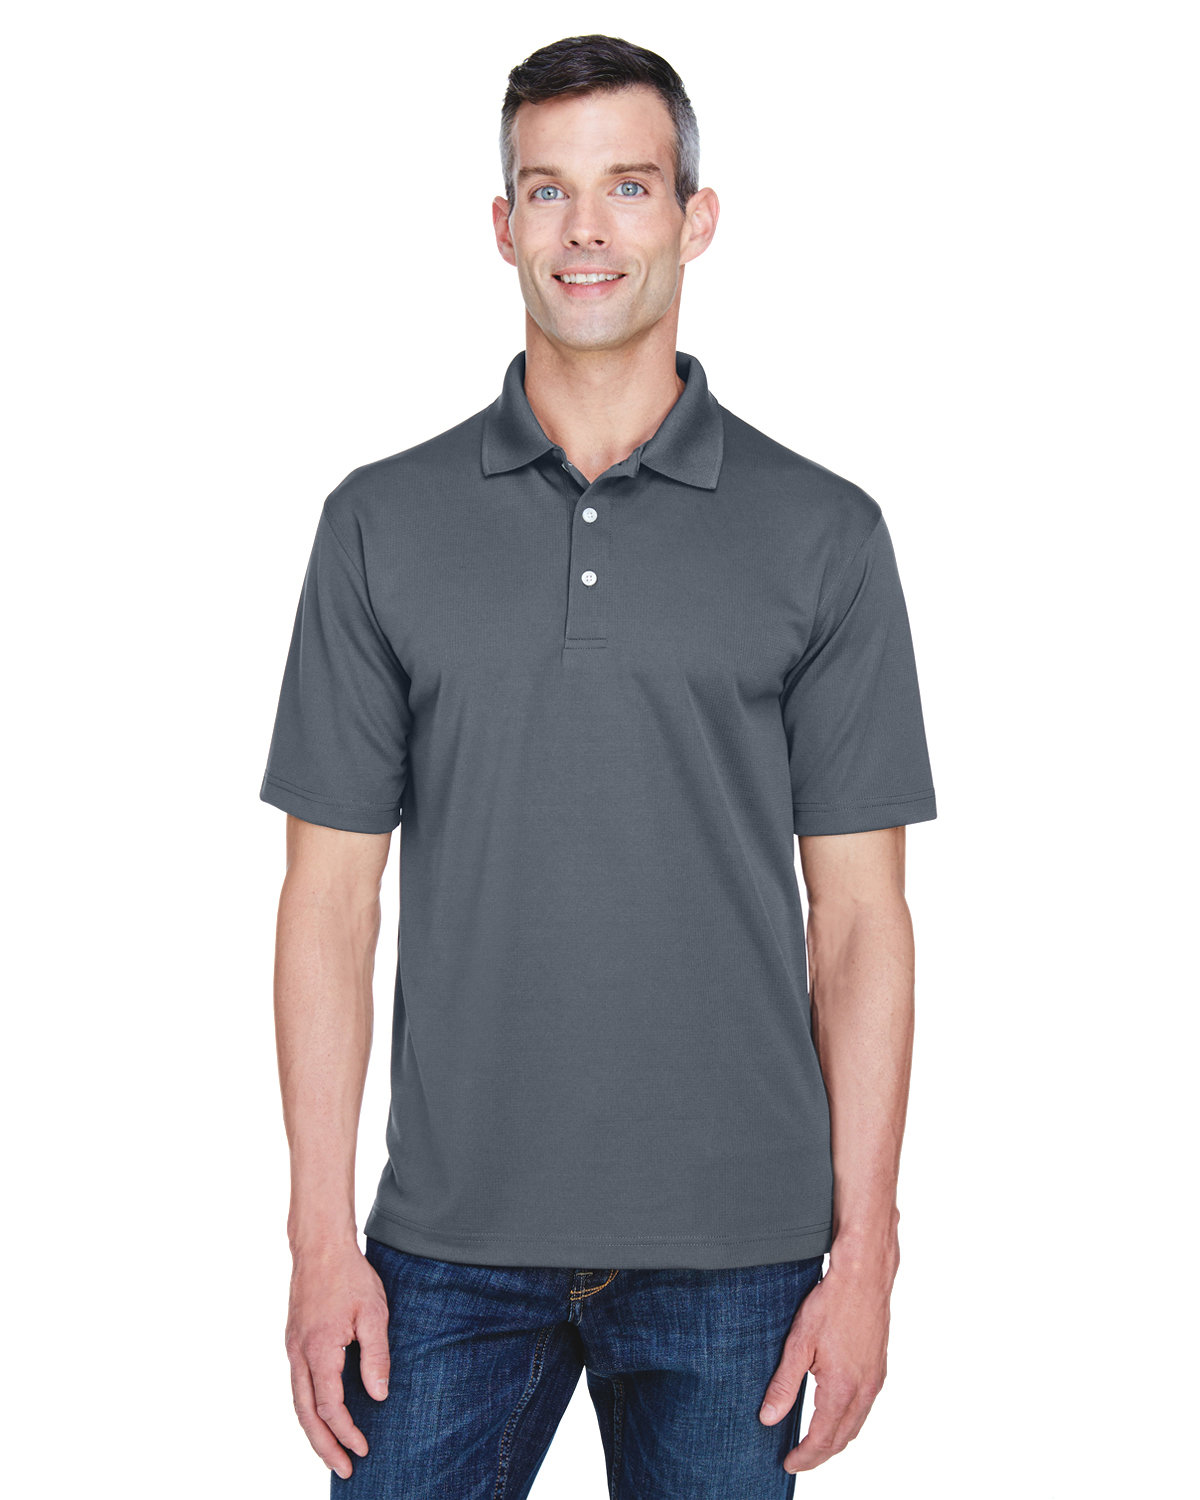 UltraClub Men's Cool & Dry Stain-Release Performance Polo CHARCOAL